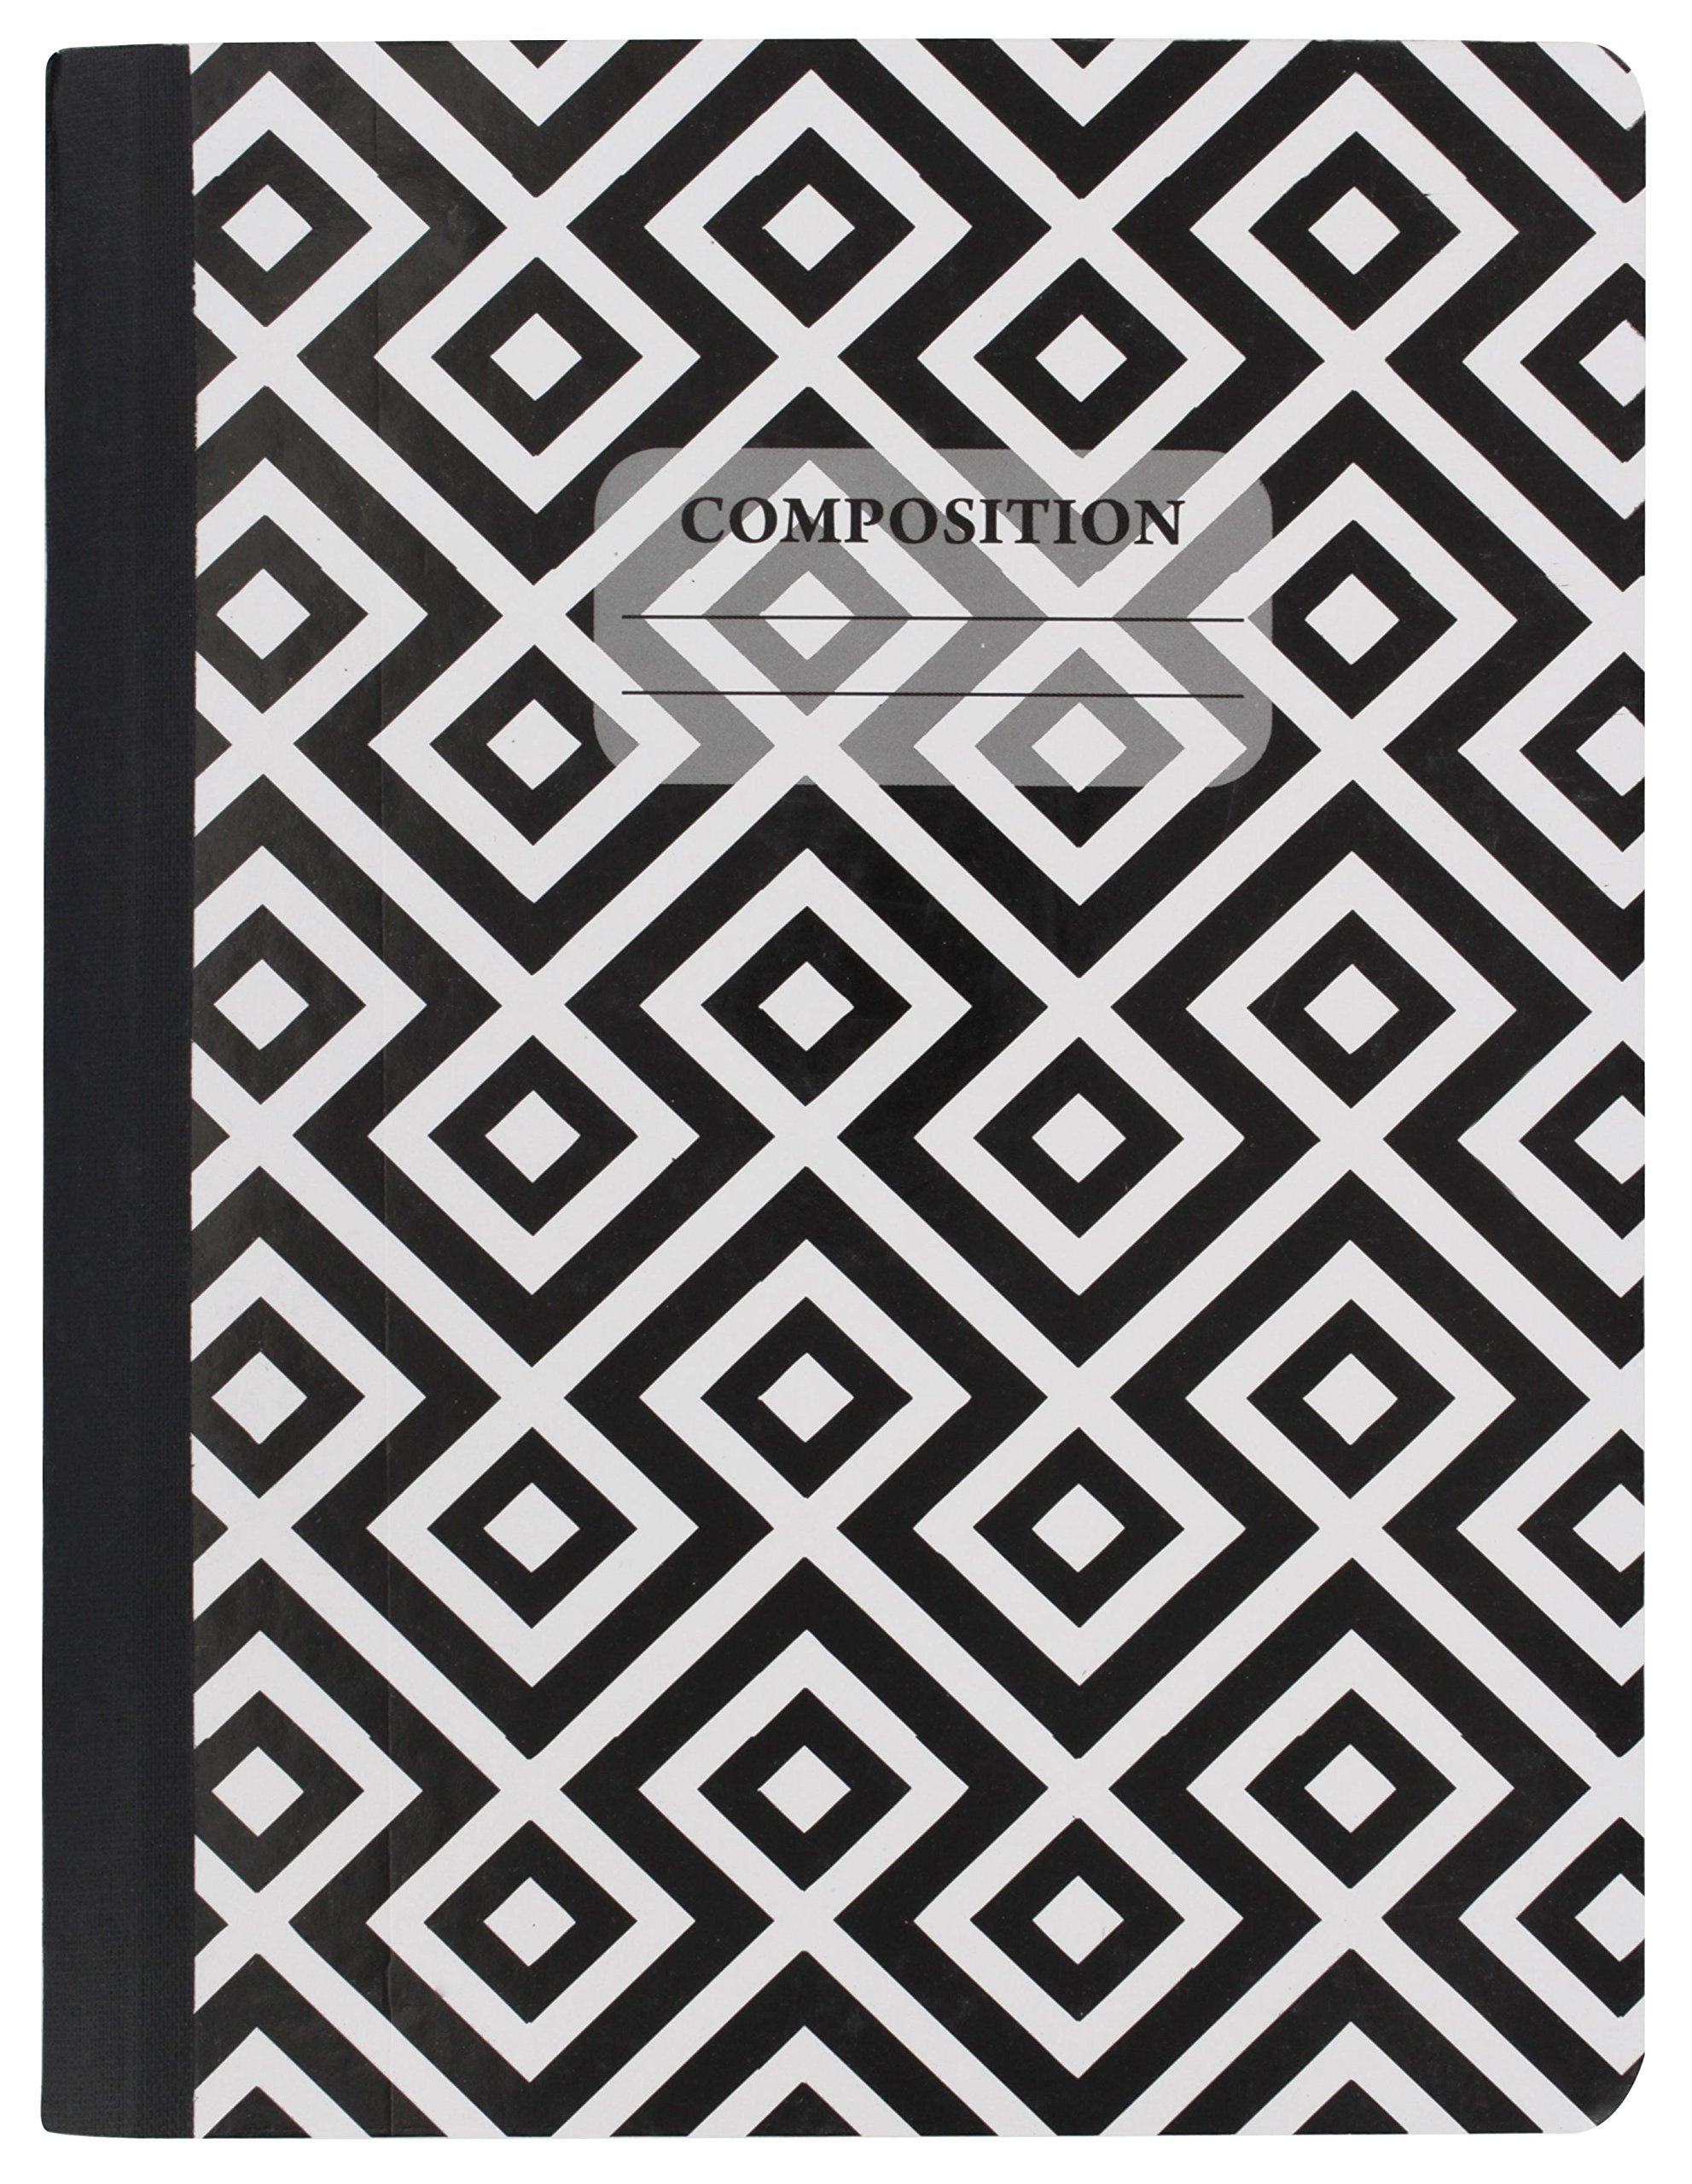 Emraw Black & White 4 Fashion Styles Cover Composition Book with 100 Sheets of Wide Ruled White Paper - Set Includes All Style Covers (4 Pack) by Emraw (Image #5)